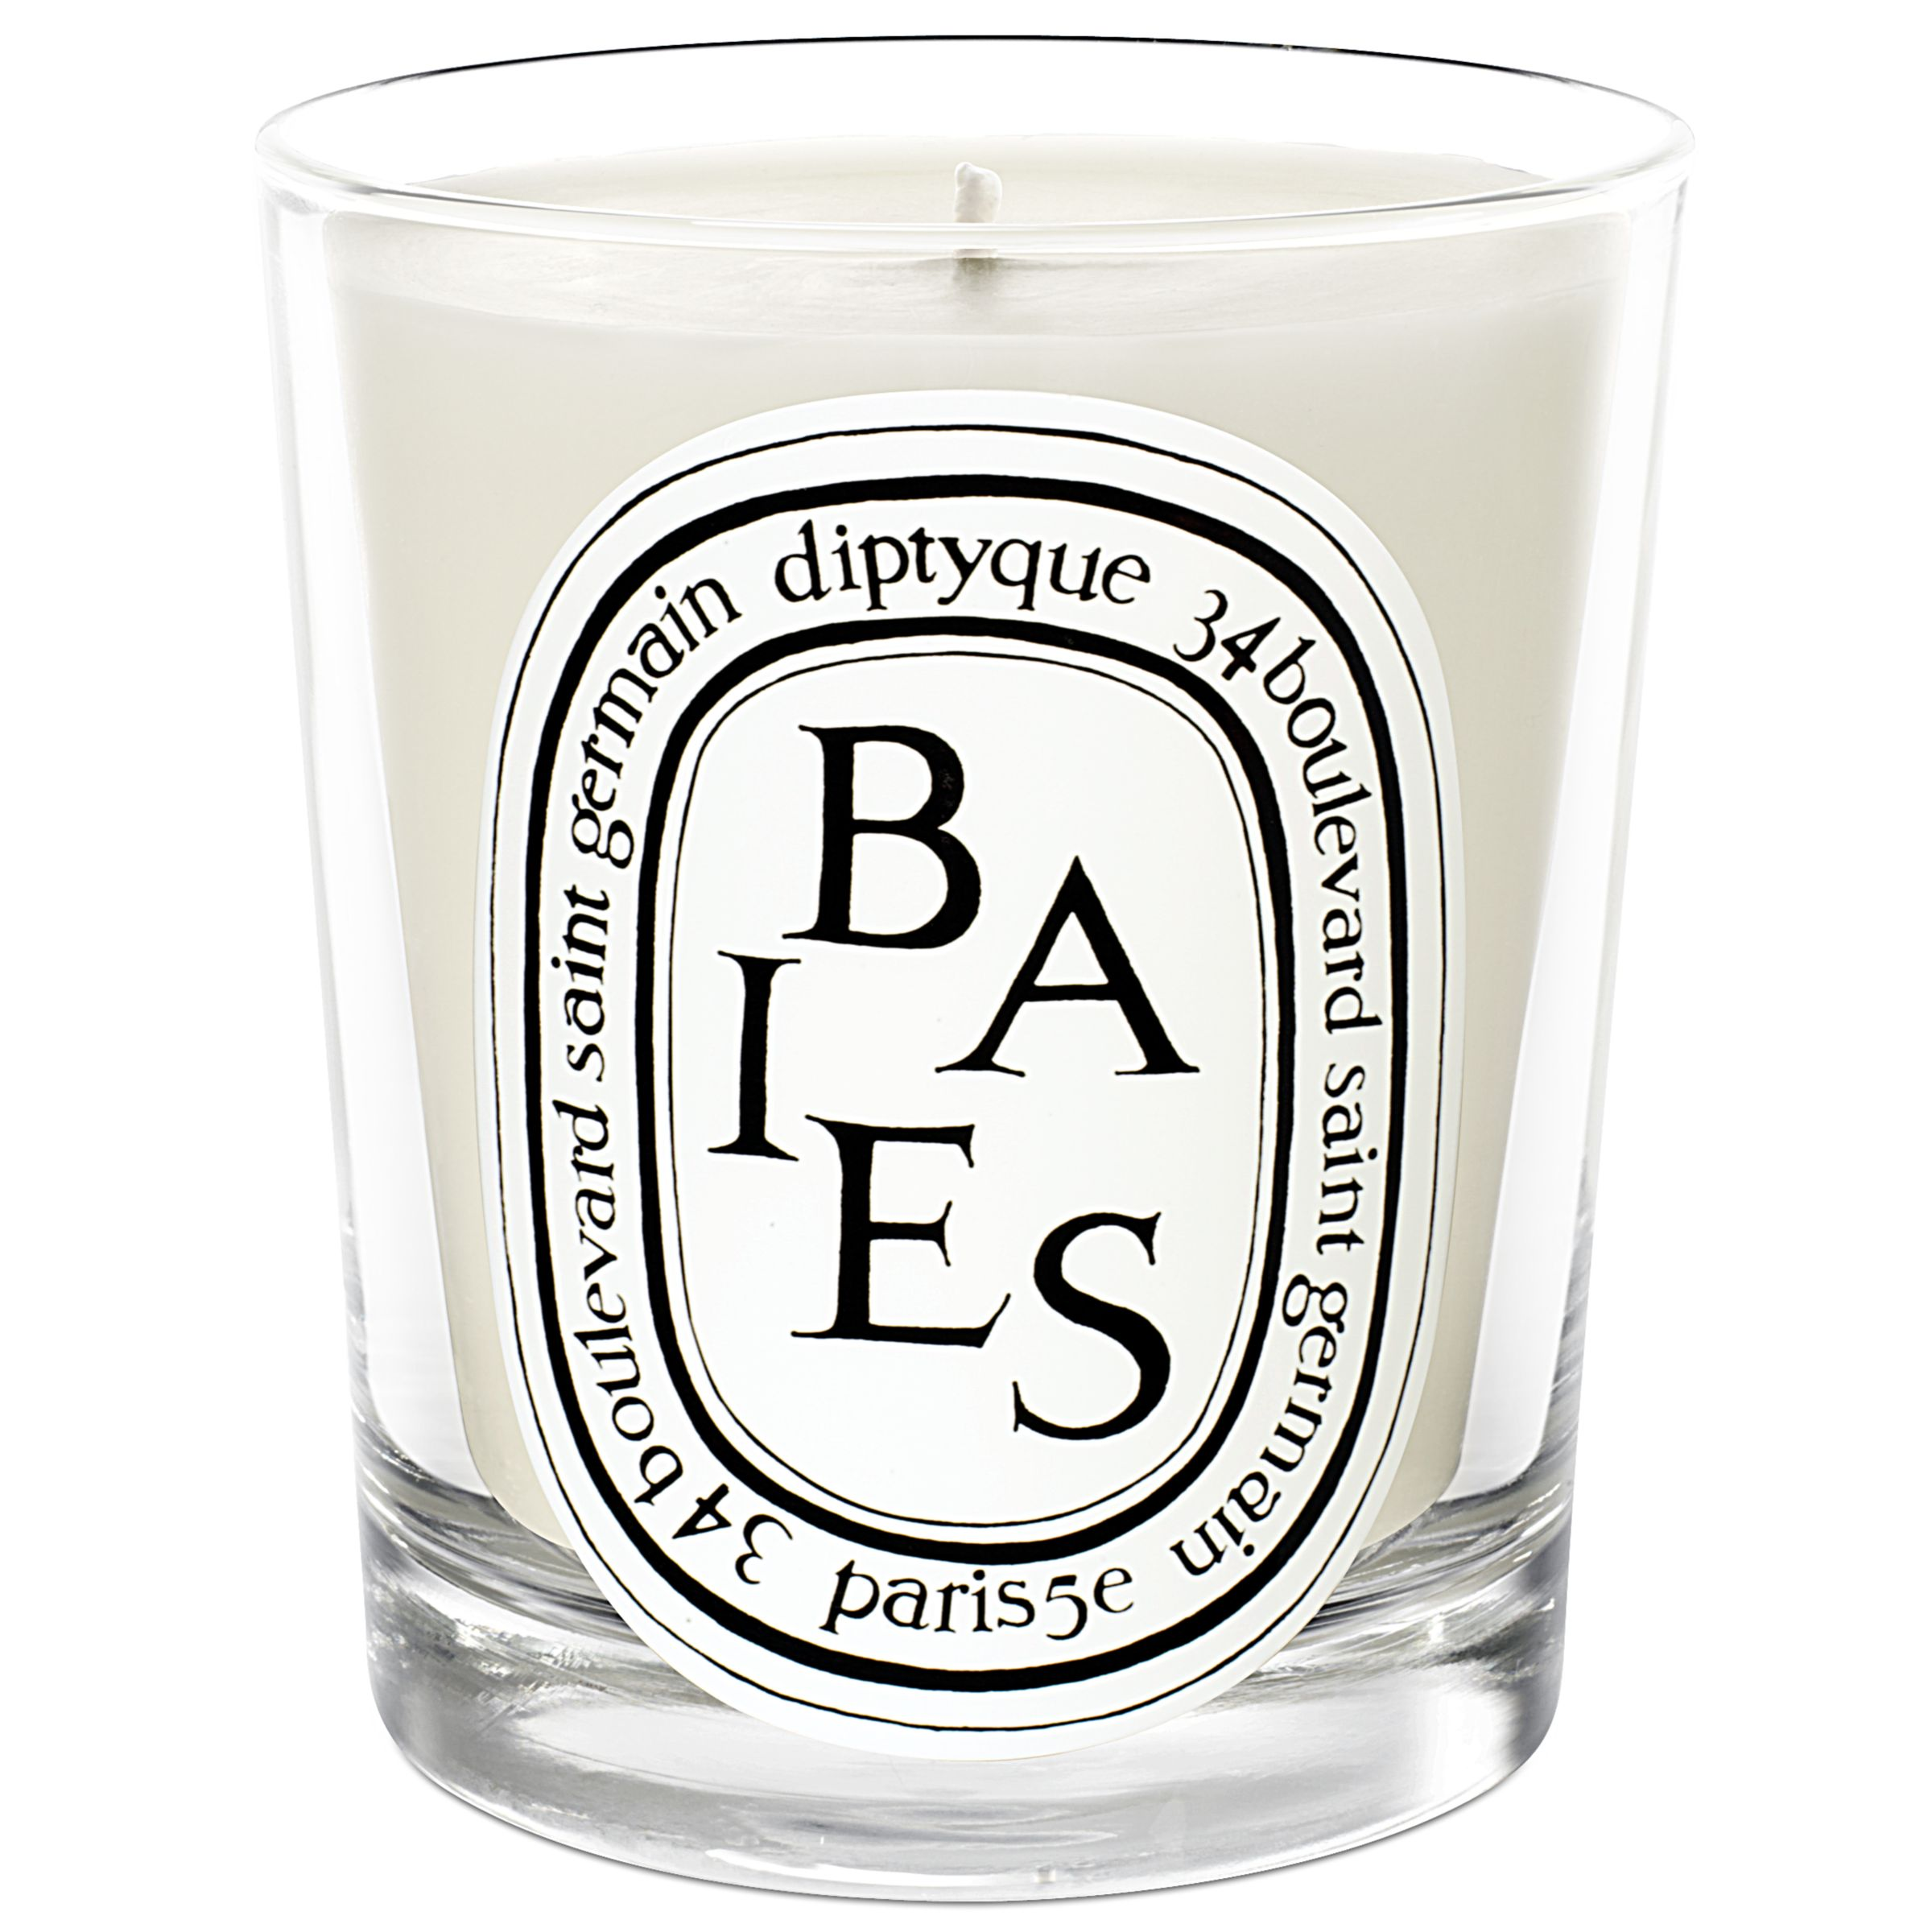 Diptyque Baies Scented Candle, 20g